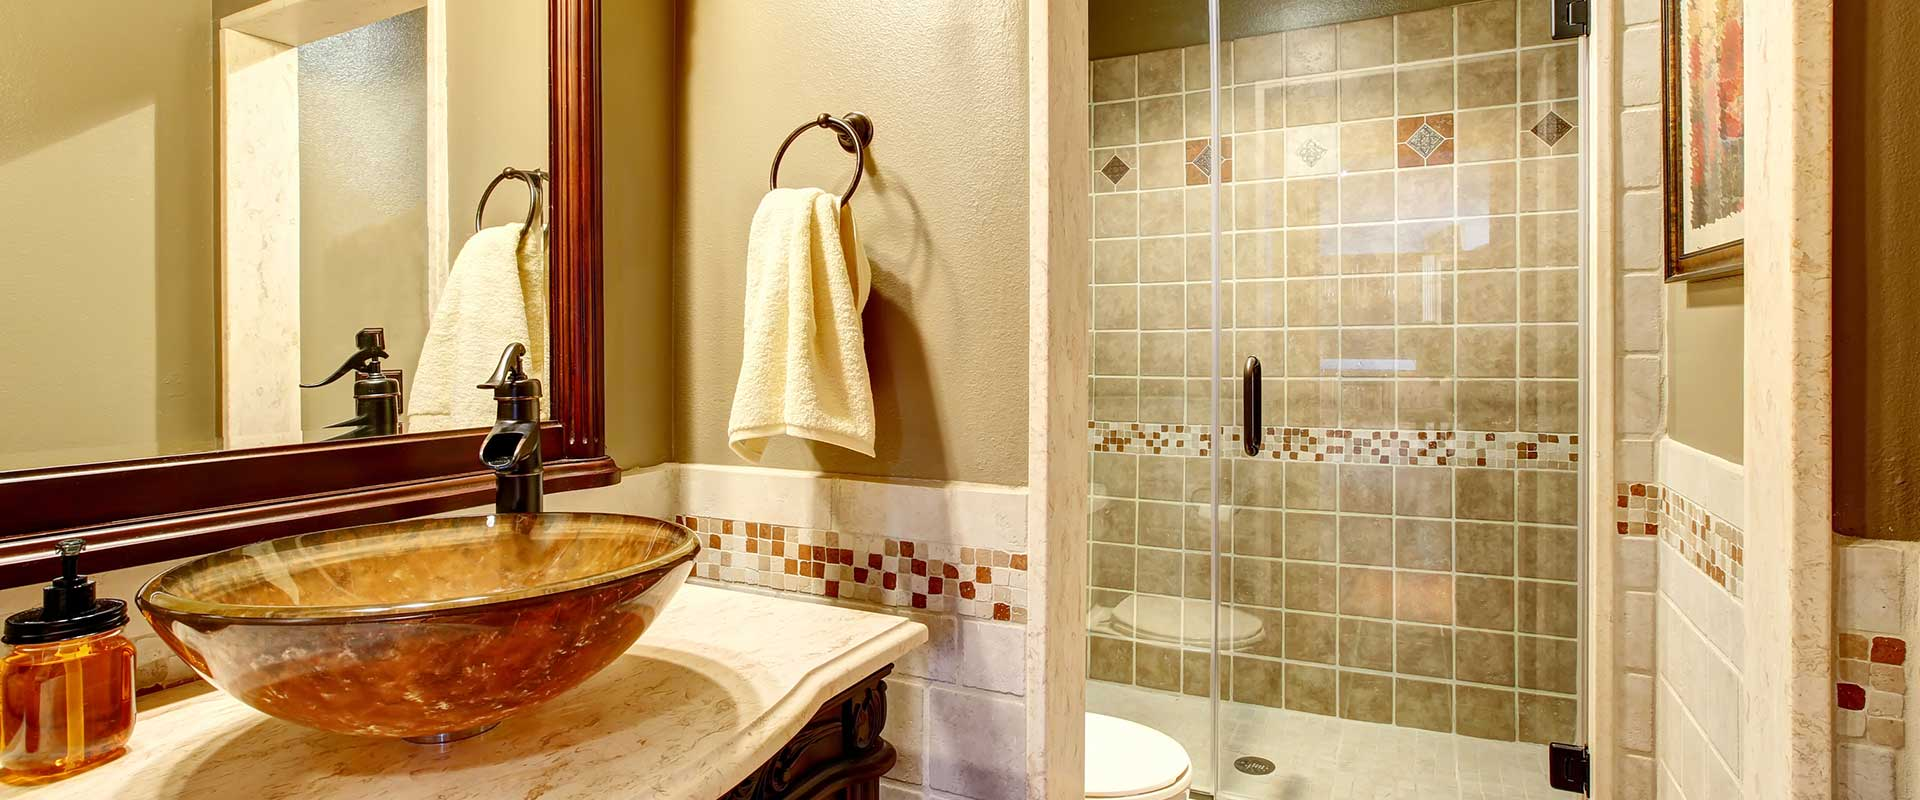 Home Designs Remodeling Flushing Grand Blanc Fenton MI - Quality advantage bathroom remodeling